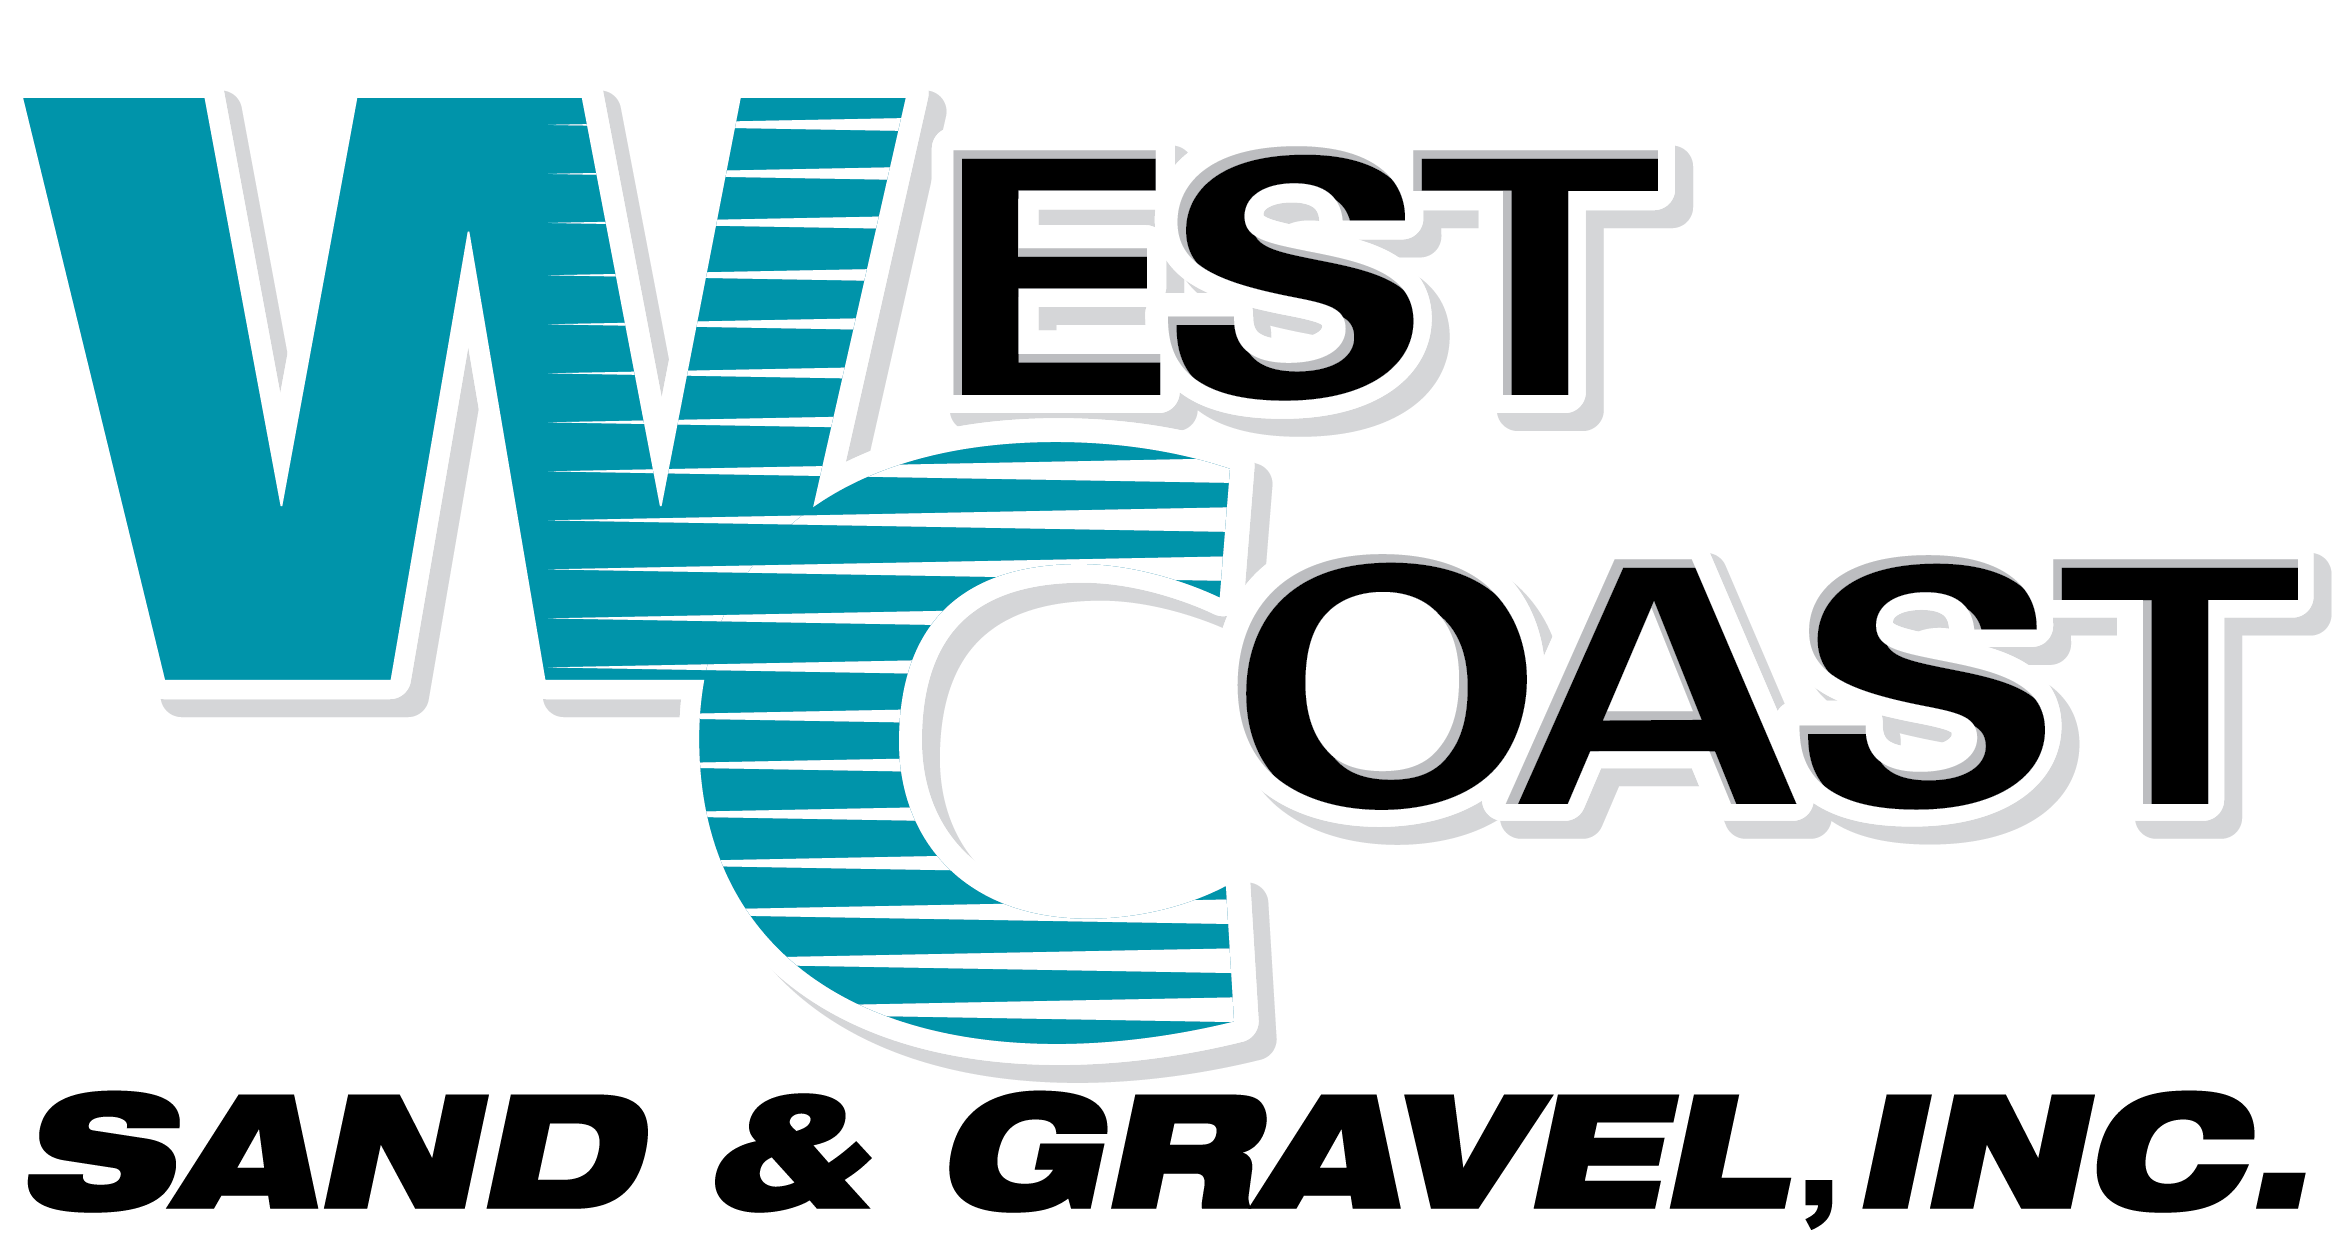 Business logo of West Coast Sand and Gravel